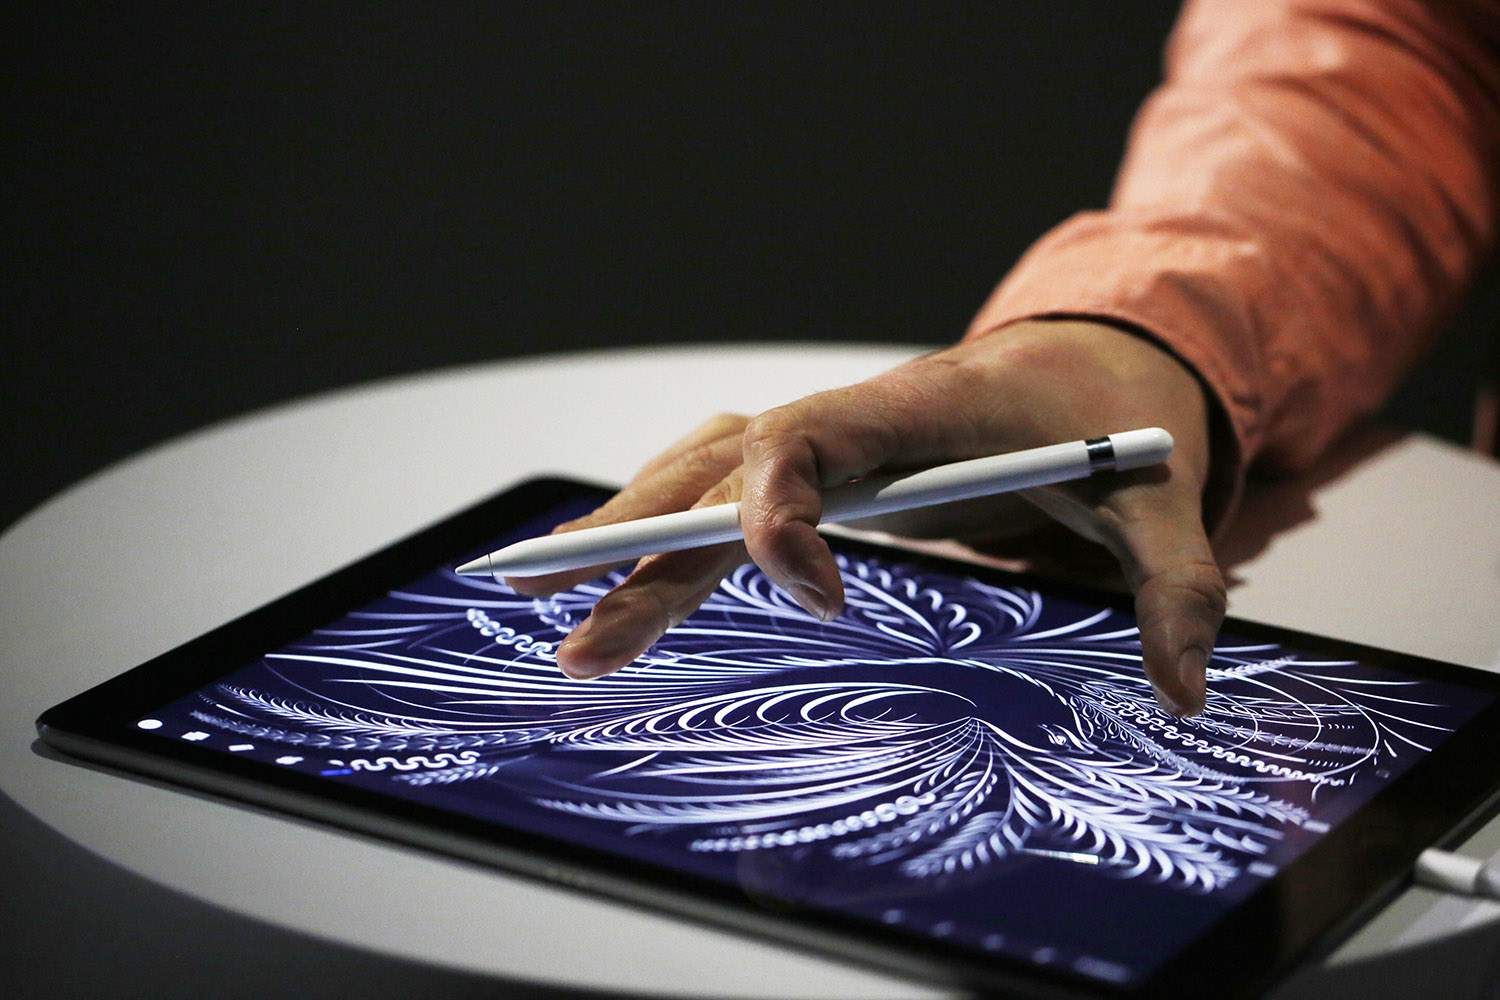 Using the new Apple Pencil on an iPad Pro after an Apple special event at Bill Graham Civic Auditorium September 9, 2015